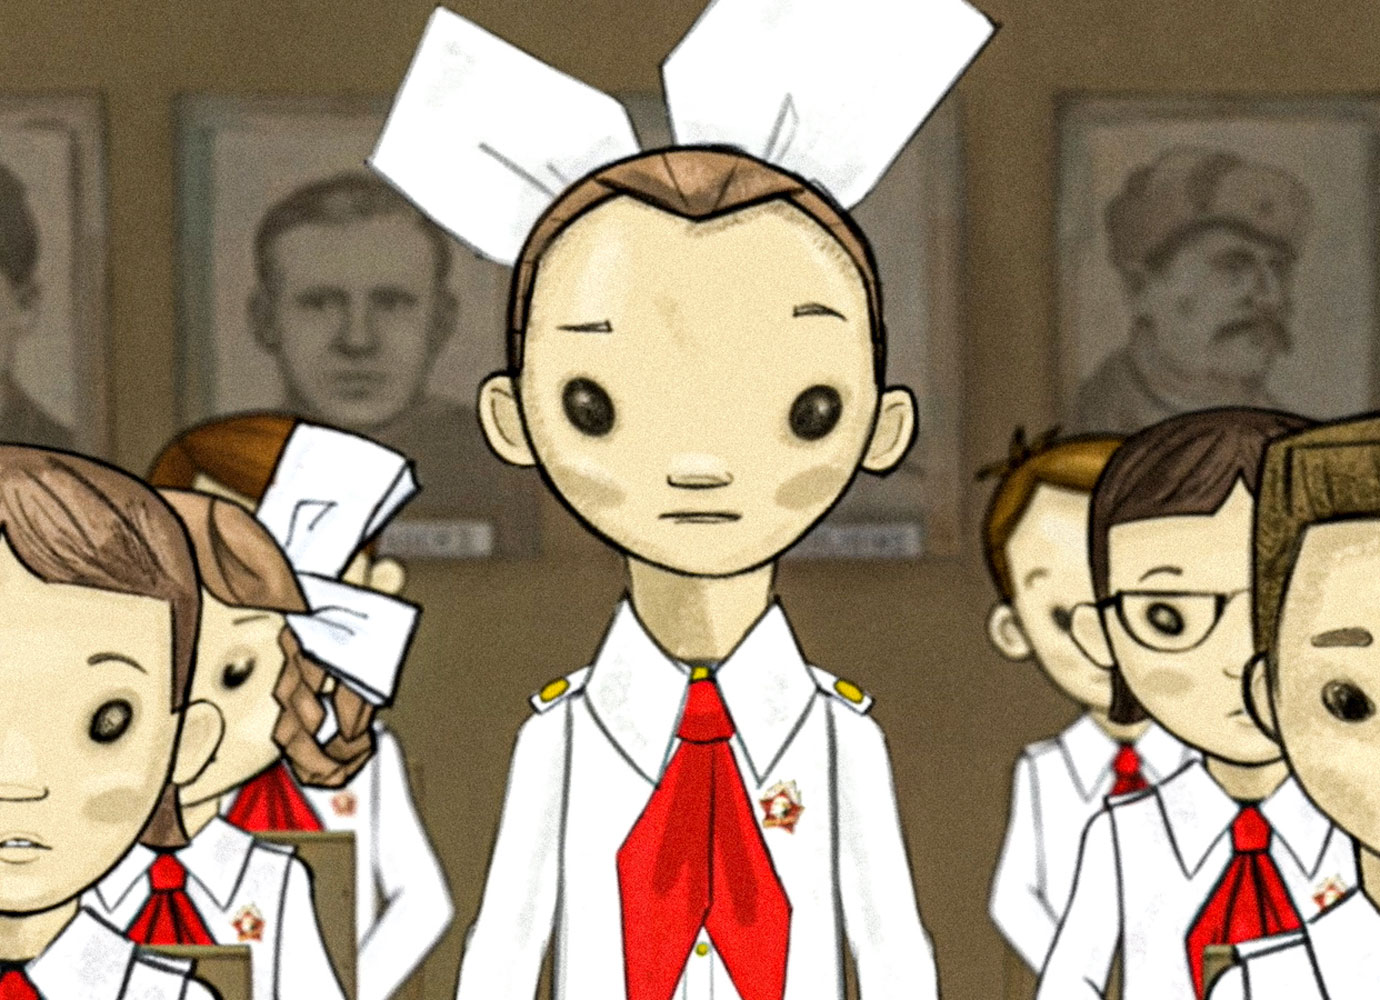 My Favorite War: the animated memoir on growing up in Cold War Latvia